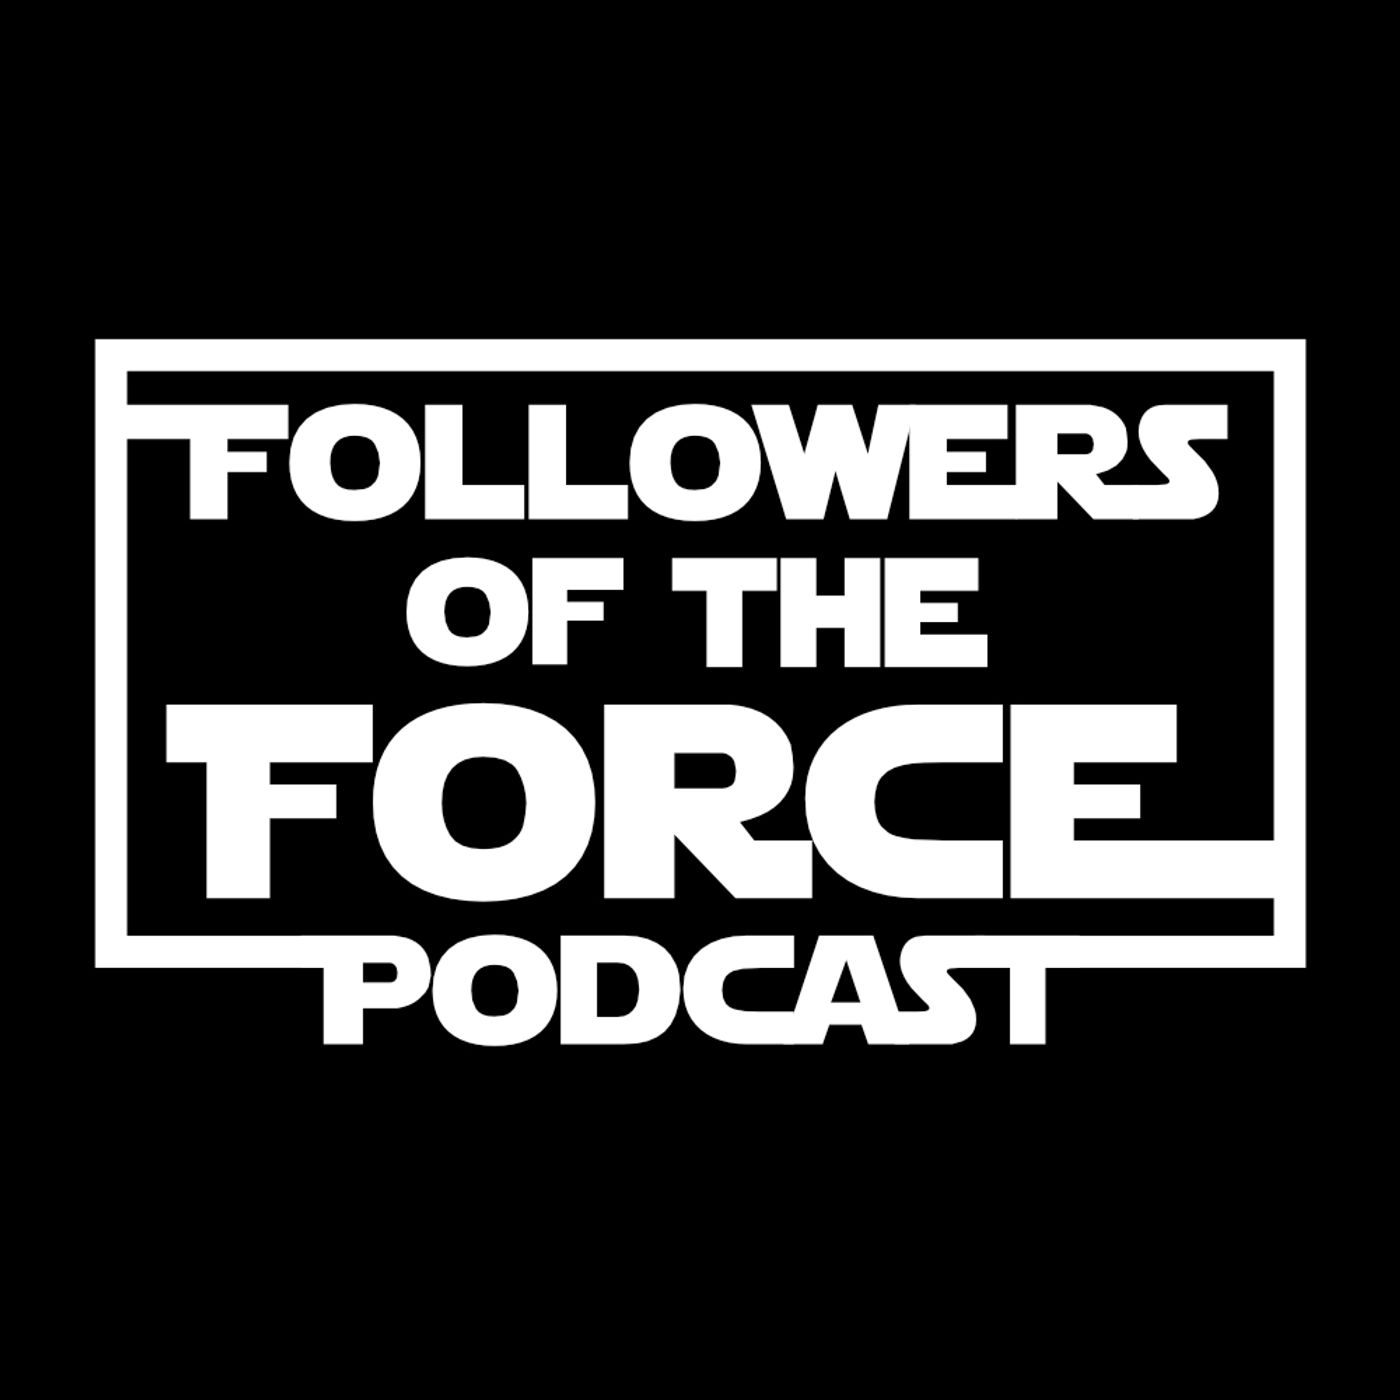 Your Star Wars Journey #52 - A Larger View of the Force